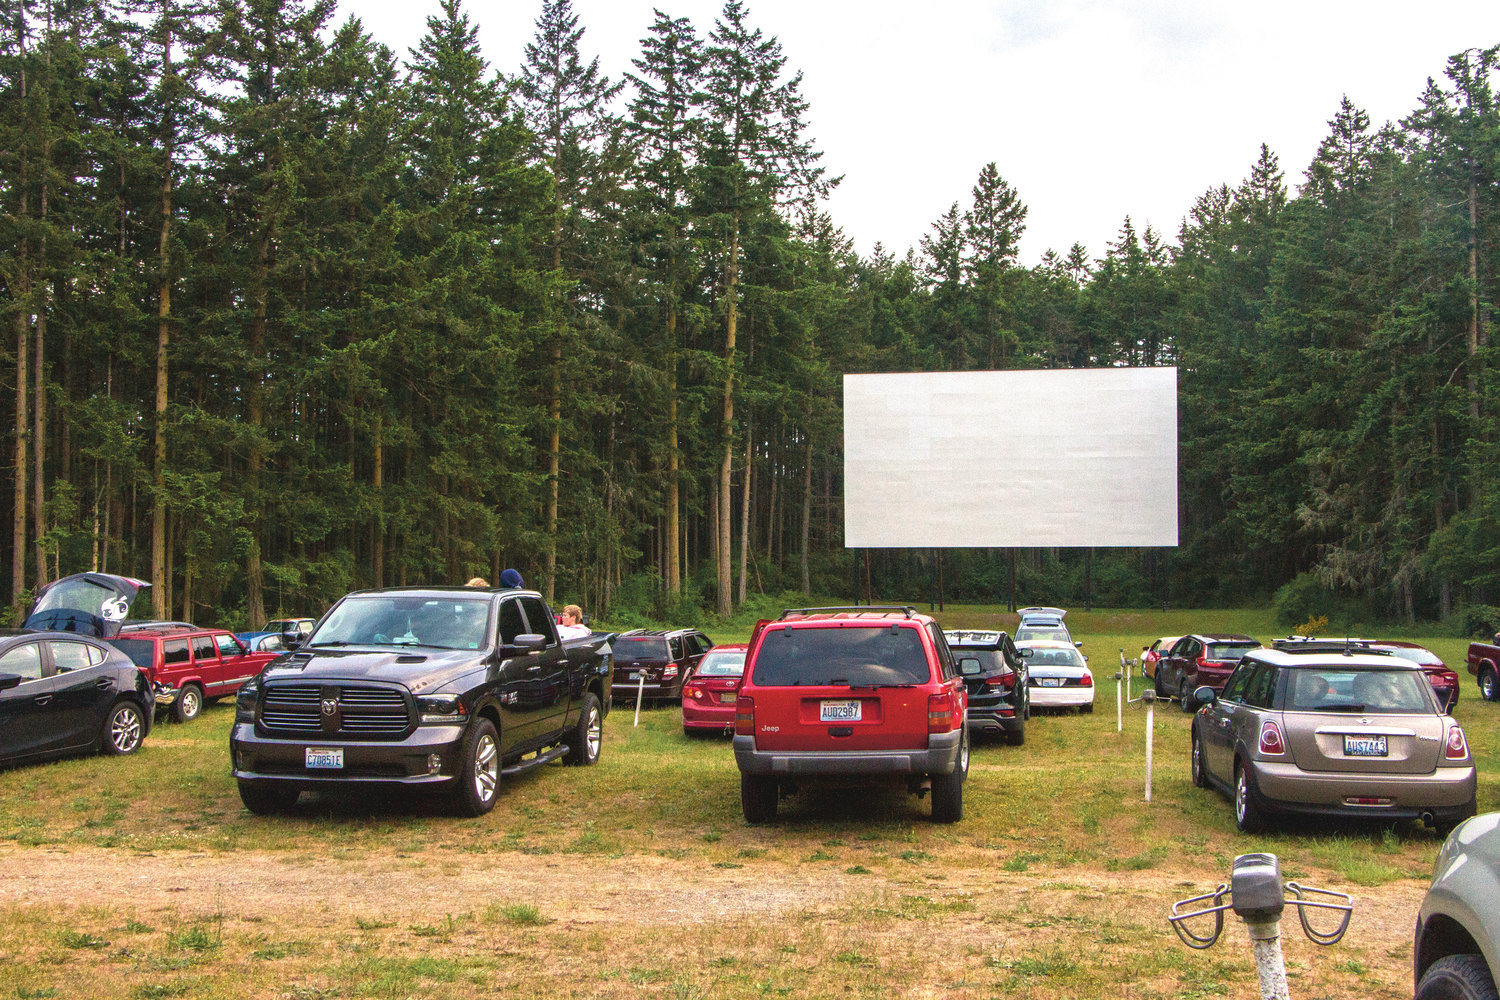 Phase 2 Allows Drive In Theater To Reopen Port Townsend Leader